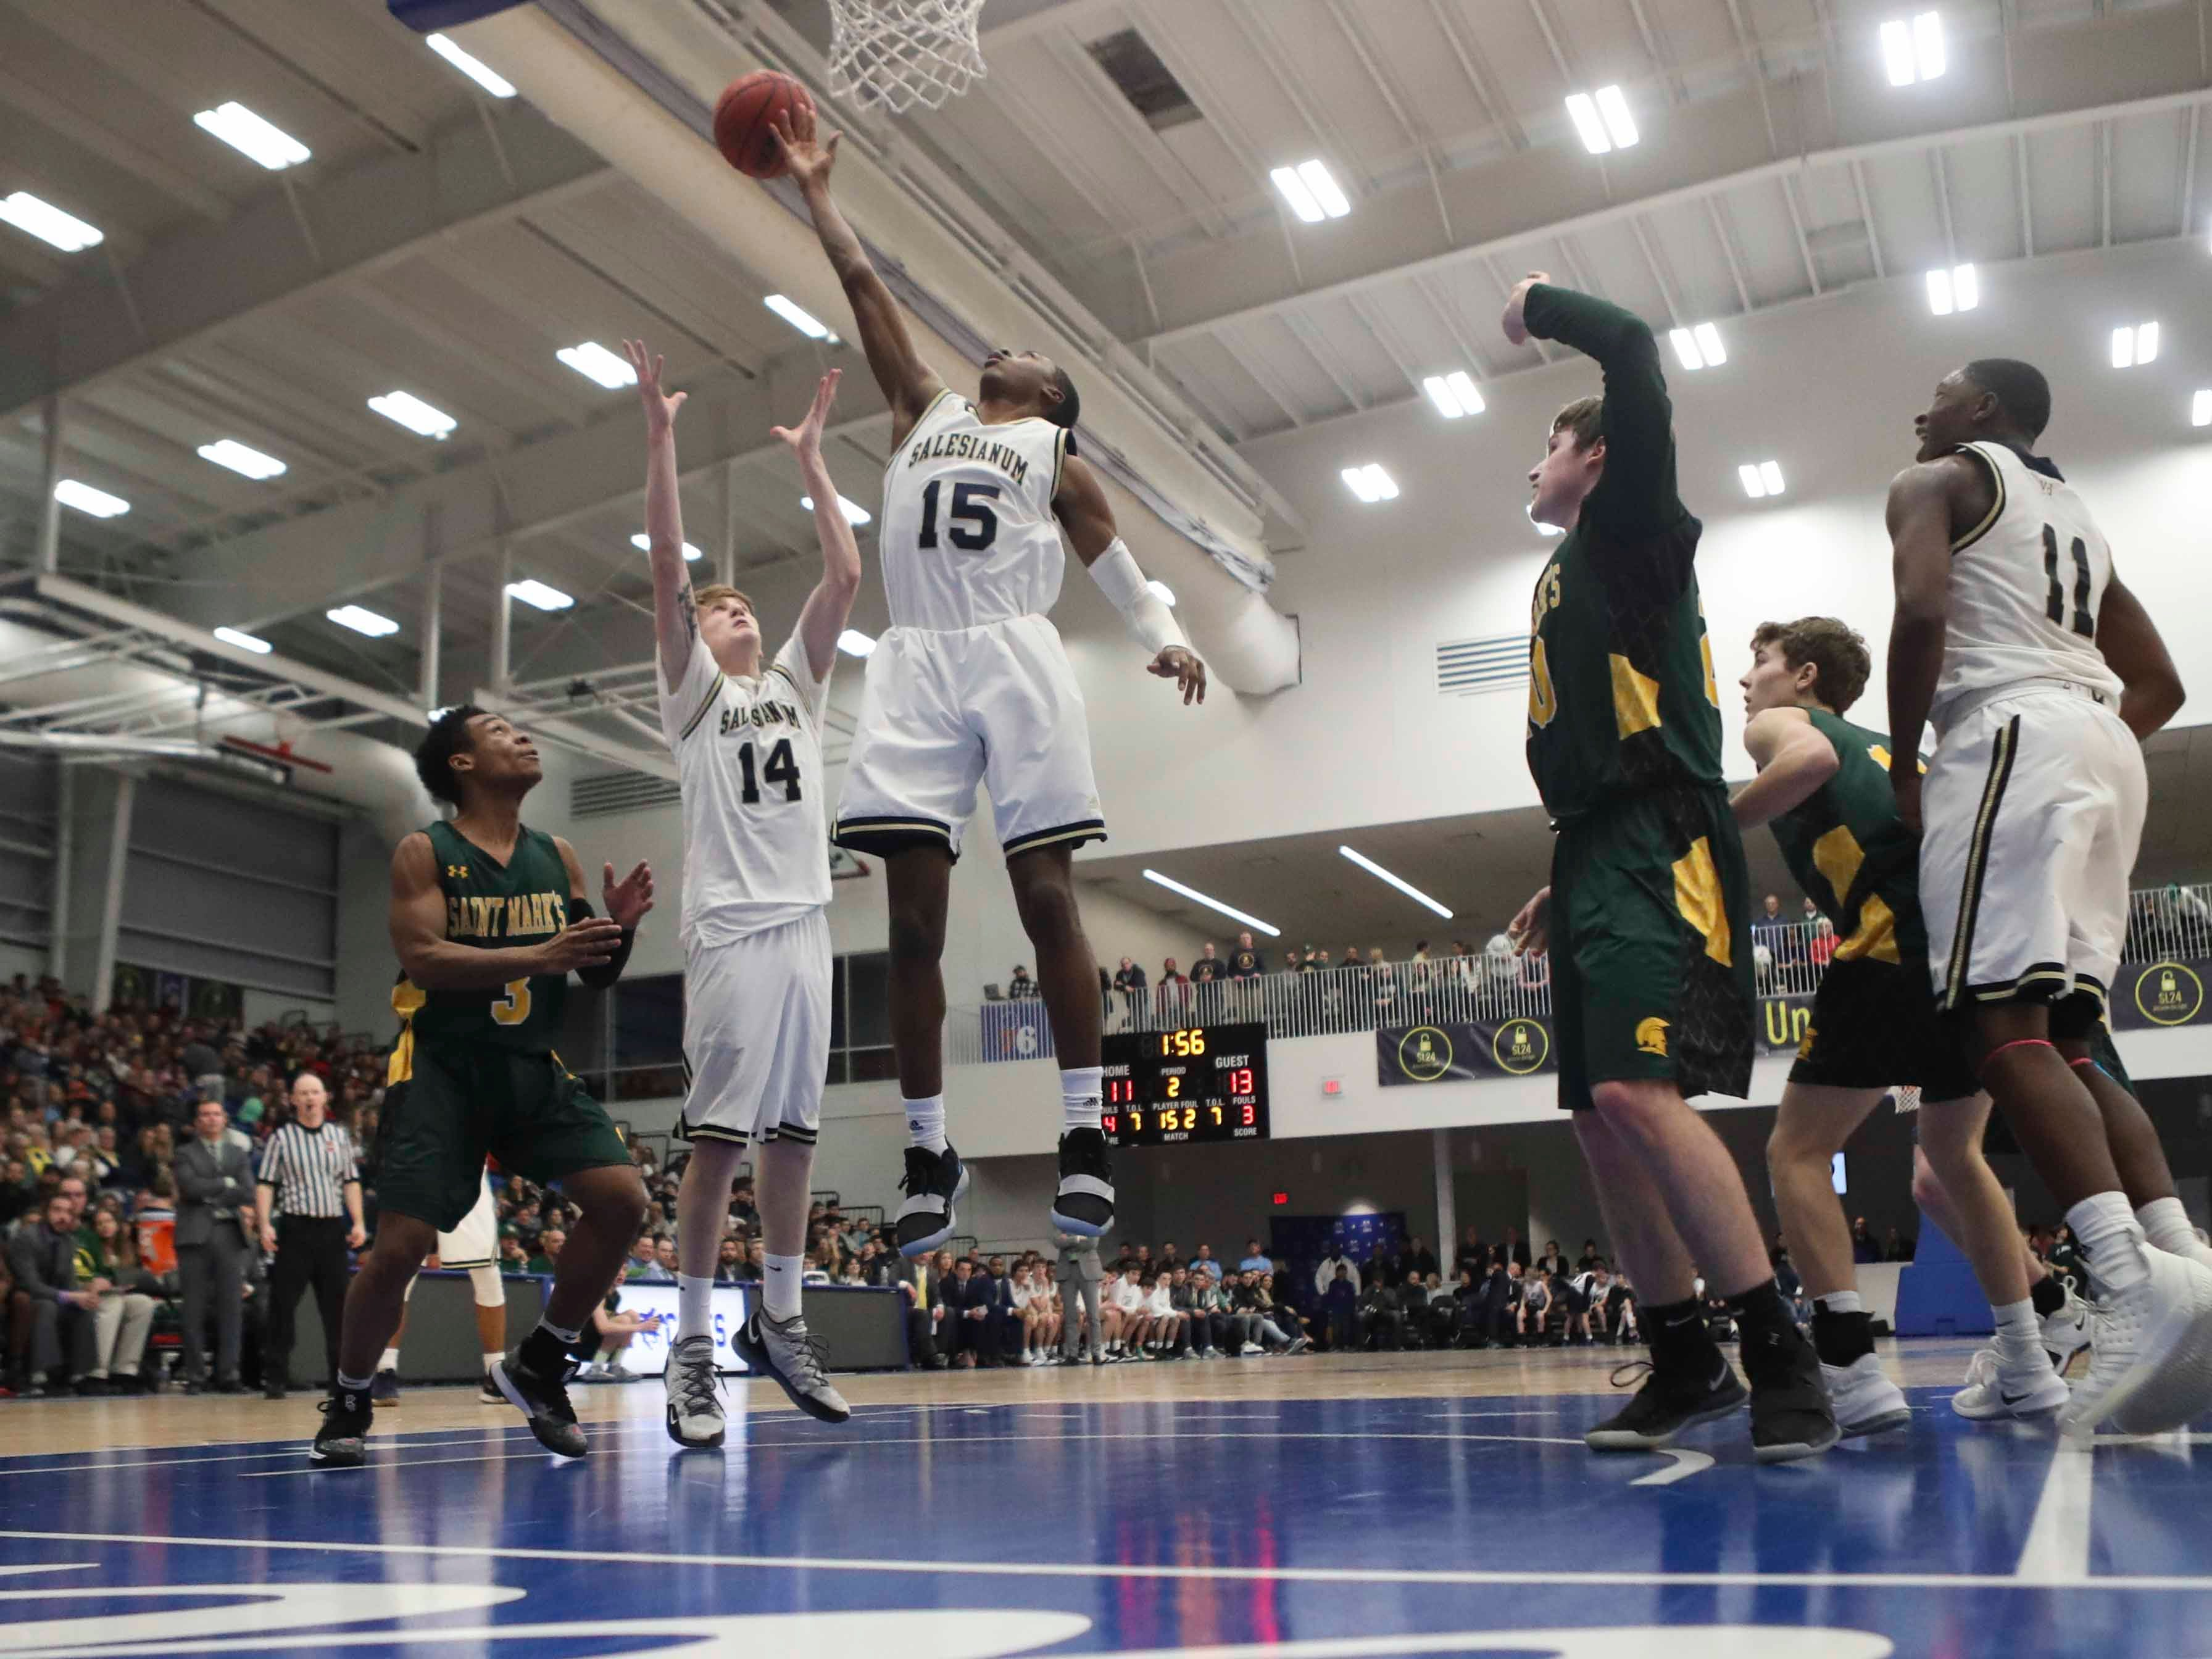 Salesianum's Sean Regan (14) and Rasheed Caulk extend for a rebound in the SL24 Memorial Basketball Classic at the 76ers Fieldhouse in Wilmington Friday.